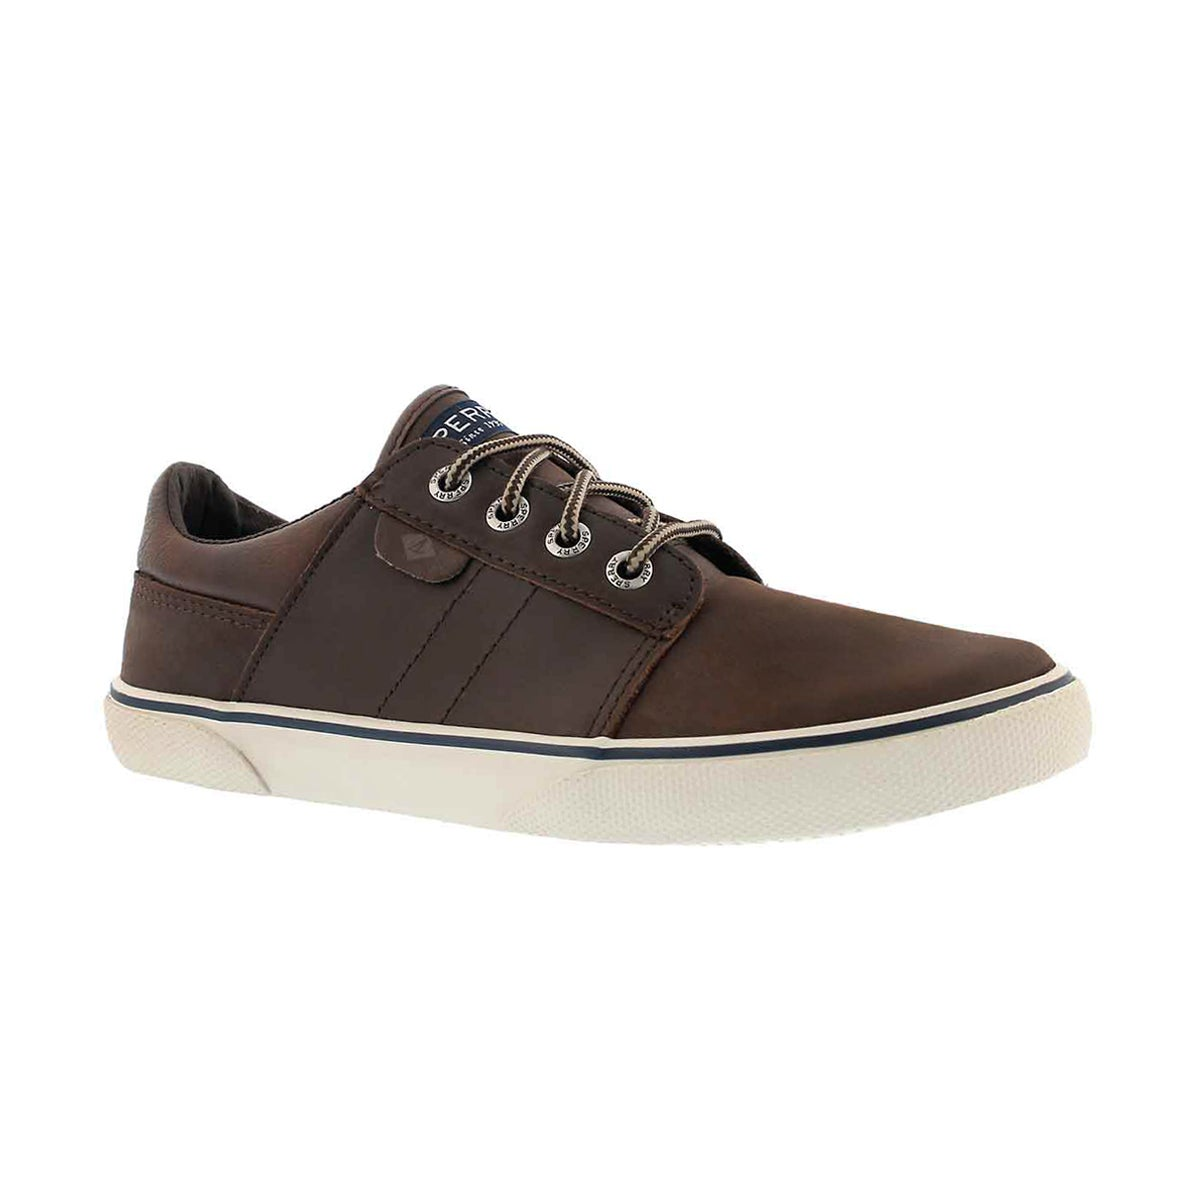 Boys' OLLIE brown lace up sneakers